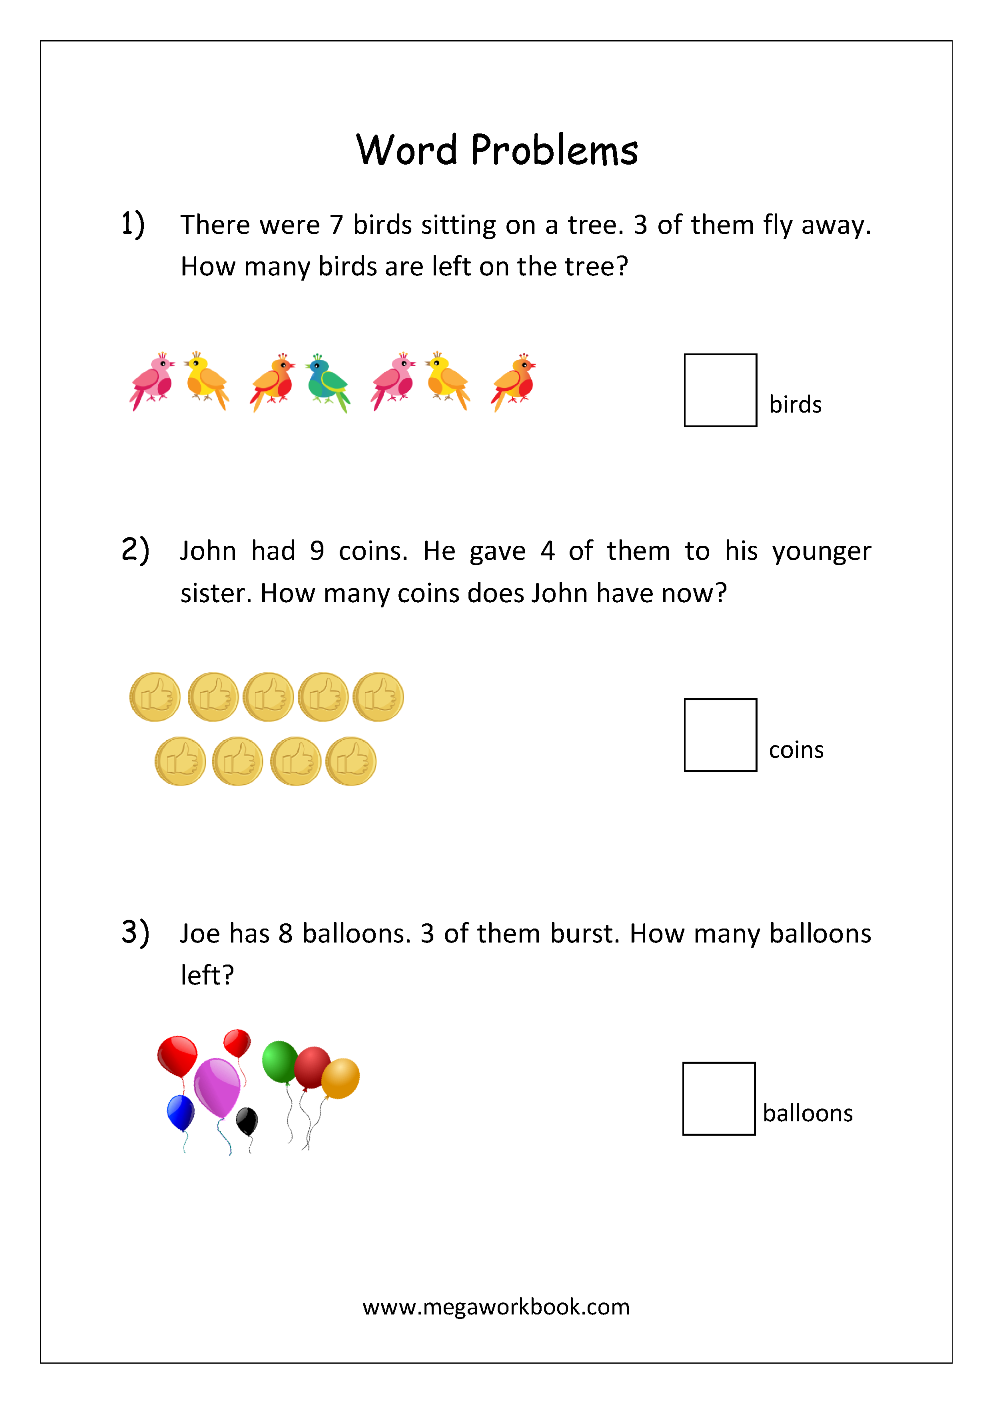 Word Problems (Addition/Subtraction)